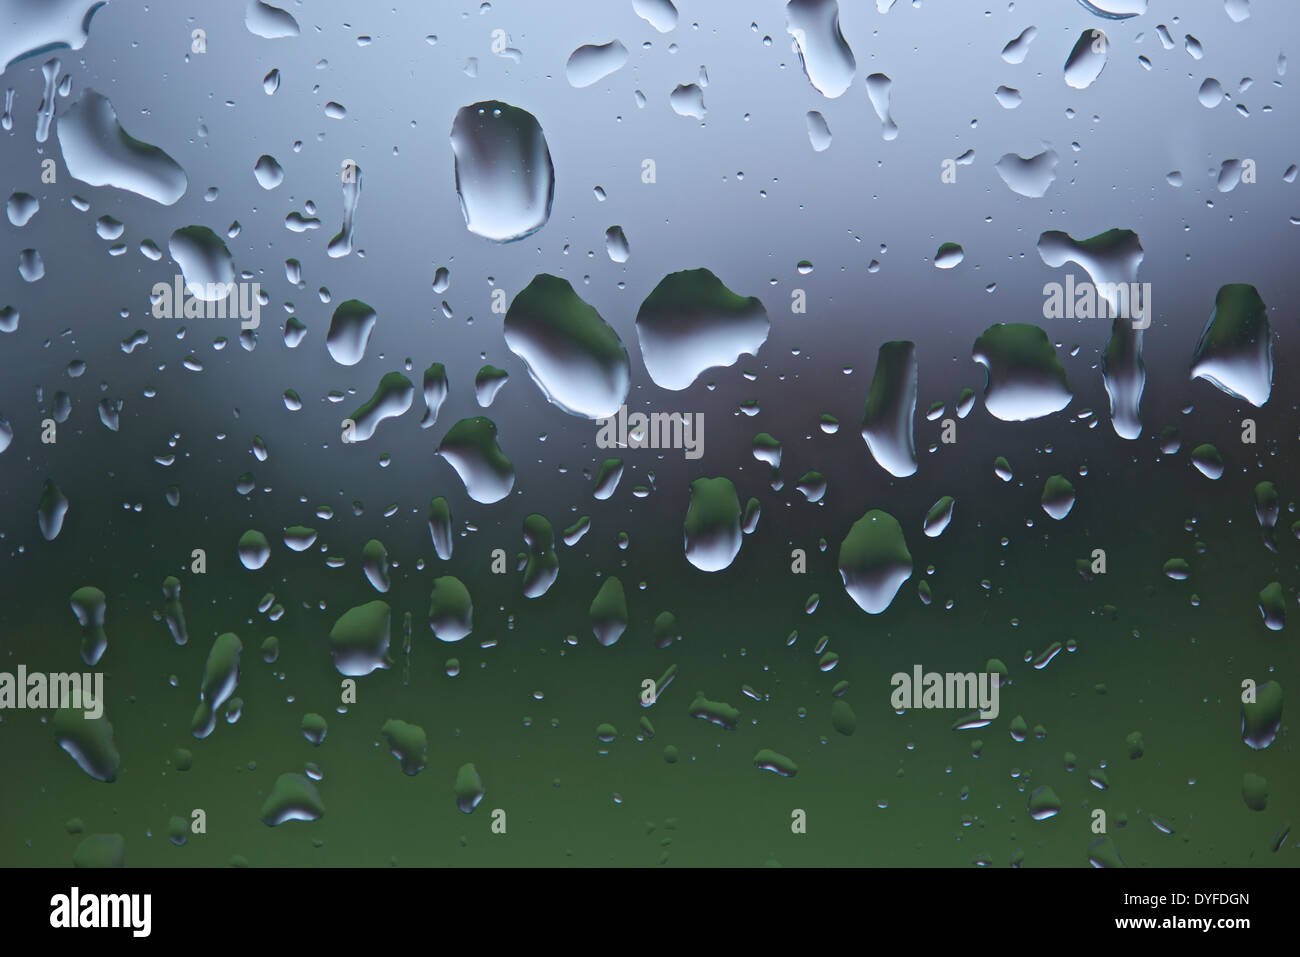 Close-up of raindrops on a window pane after heavy rain with background thrown out of focus. - Stock Image